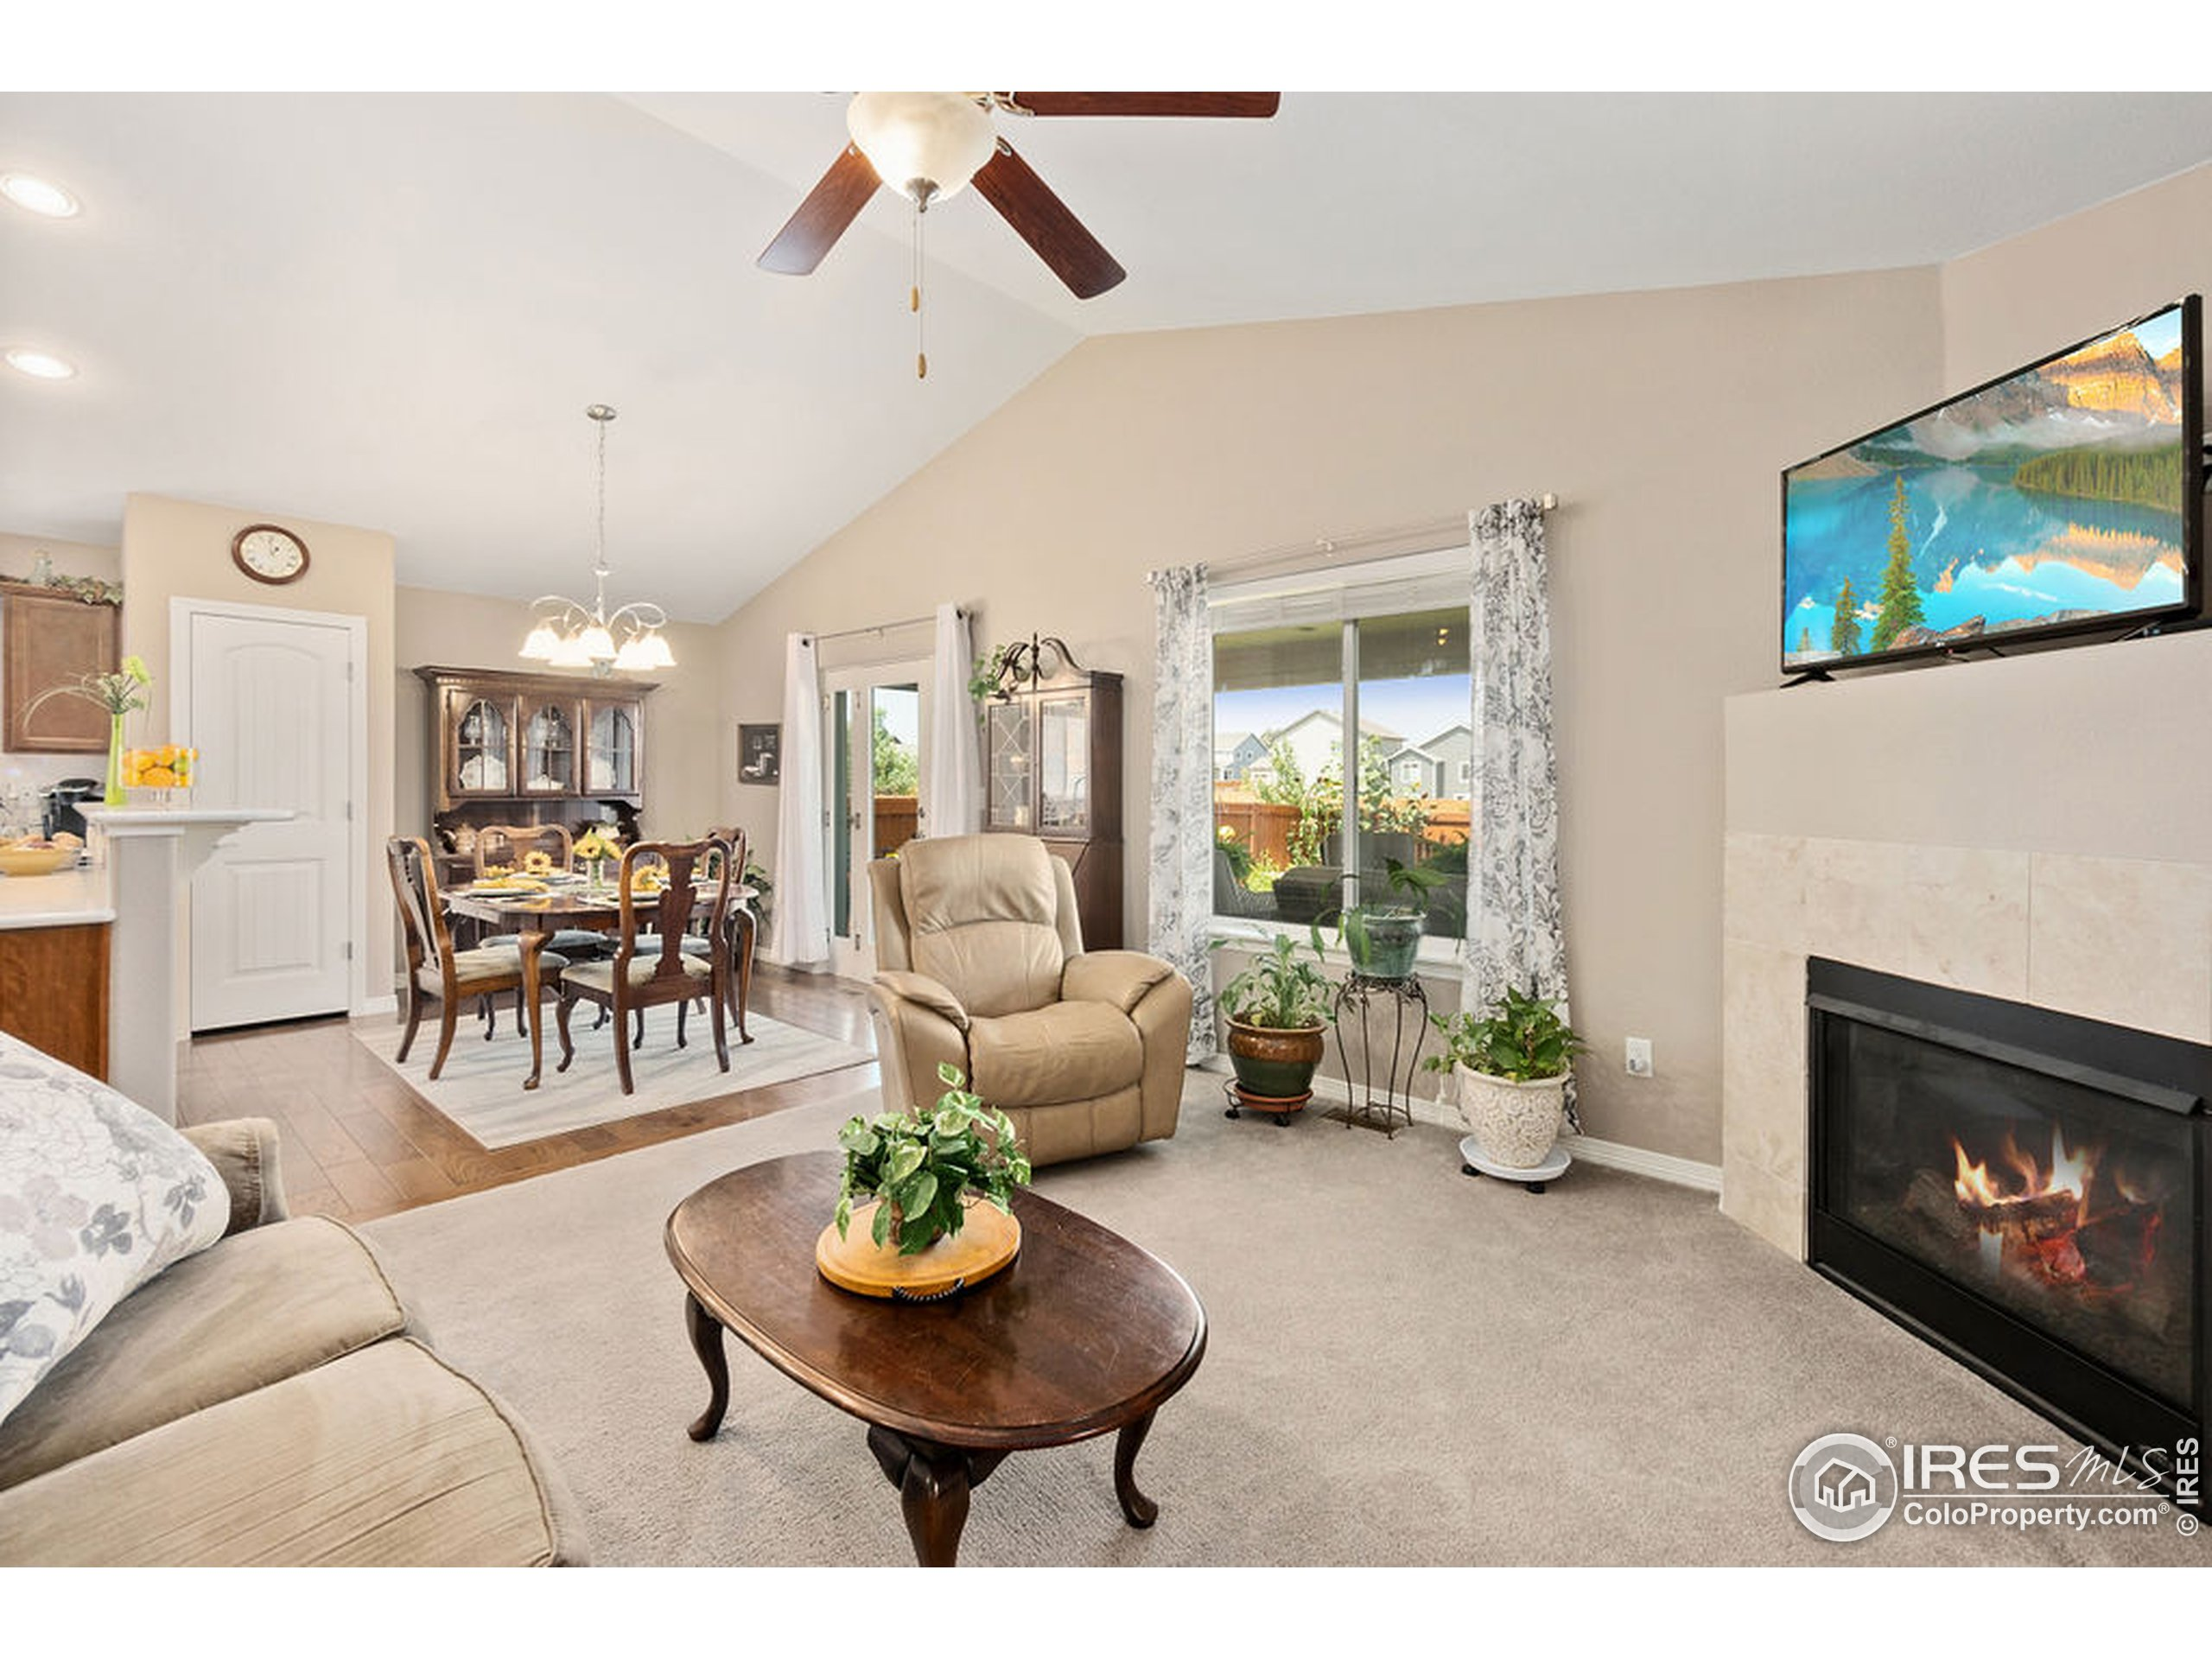 Corner gas fireplace with large vaulted ceiling